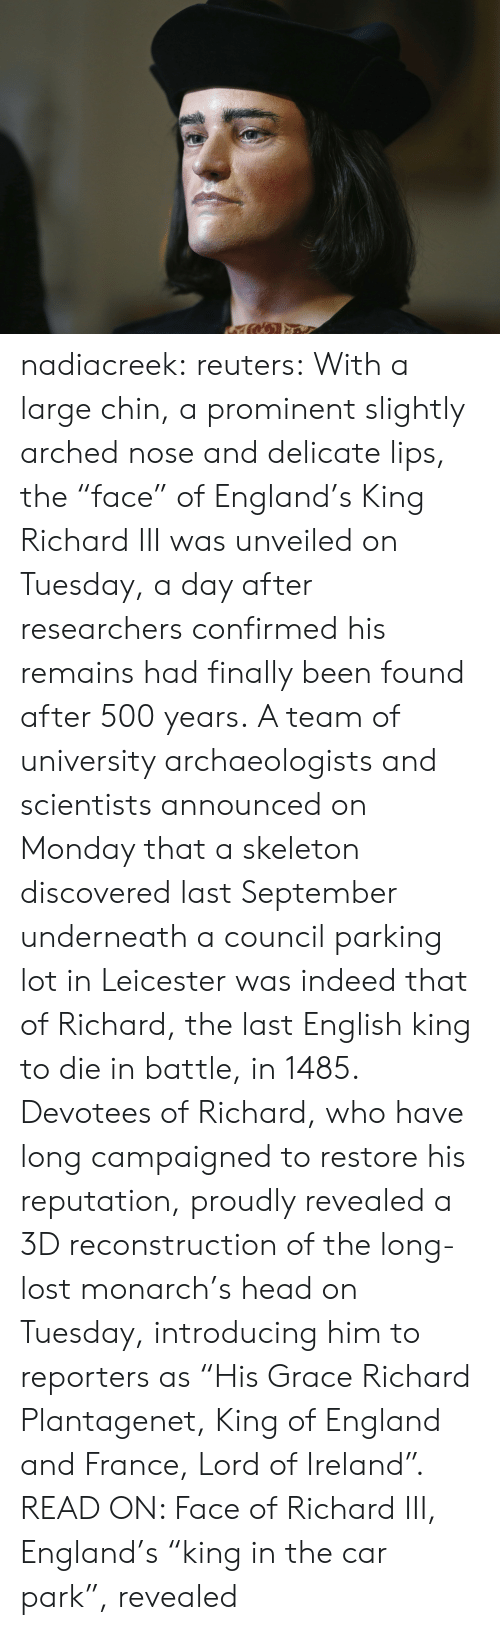 "Ireland: nadiacreek: reuters:  With a large chin, a prominent slightly arched nose and delicate lips, the ""face"" of England's King Richard III was unveiled on Tuesday, a day after researchers confirmed his remains had finally been found after 500 years. A team of university archaeologists and scientists announced on Monday that a skeleton discovered last September underneath a council parking lot in Leicester was indeed that of Richard, the last English king to die in battle, in 1485. Devotees of Richard, who have long campaigned to restore his reputation, proudly revealed a 3D reconstruction of the long-lost monarch's head on Tuesday, introducing him to reporters as ""His Grace Richard Plantagenet, King of England and France, Lord of Ireland"". READ ON: Face of Richard III, England's ""king in the car park"", revealed"